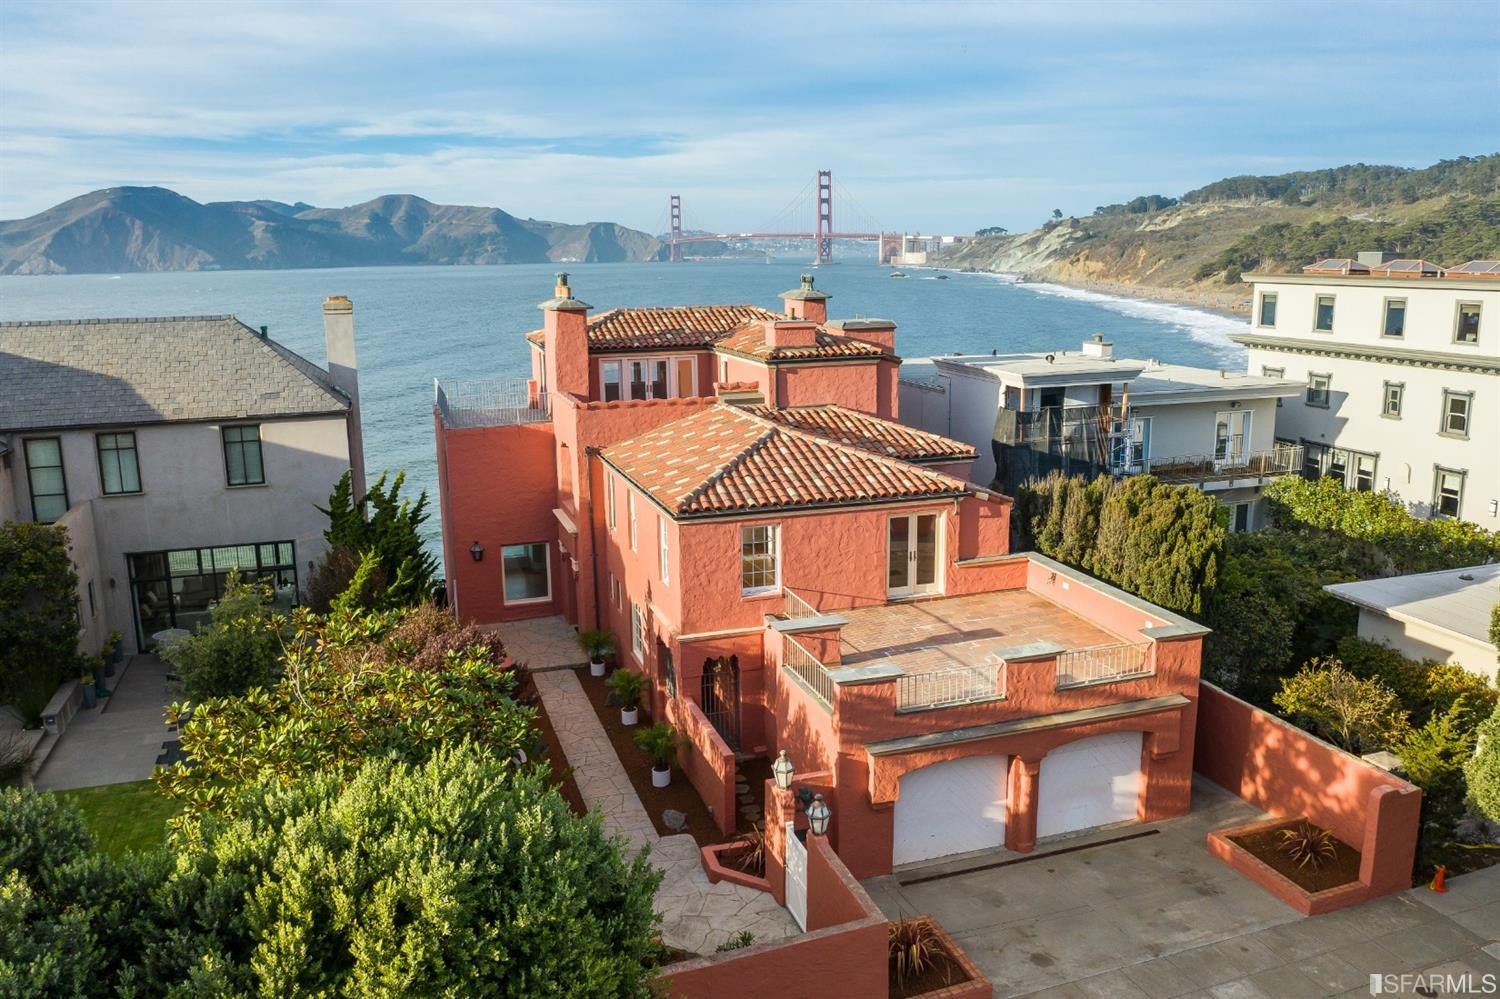 4-Story House In Seacliff